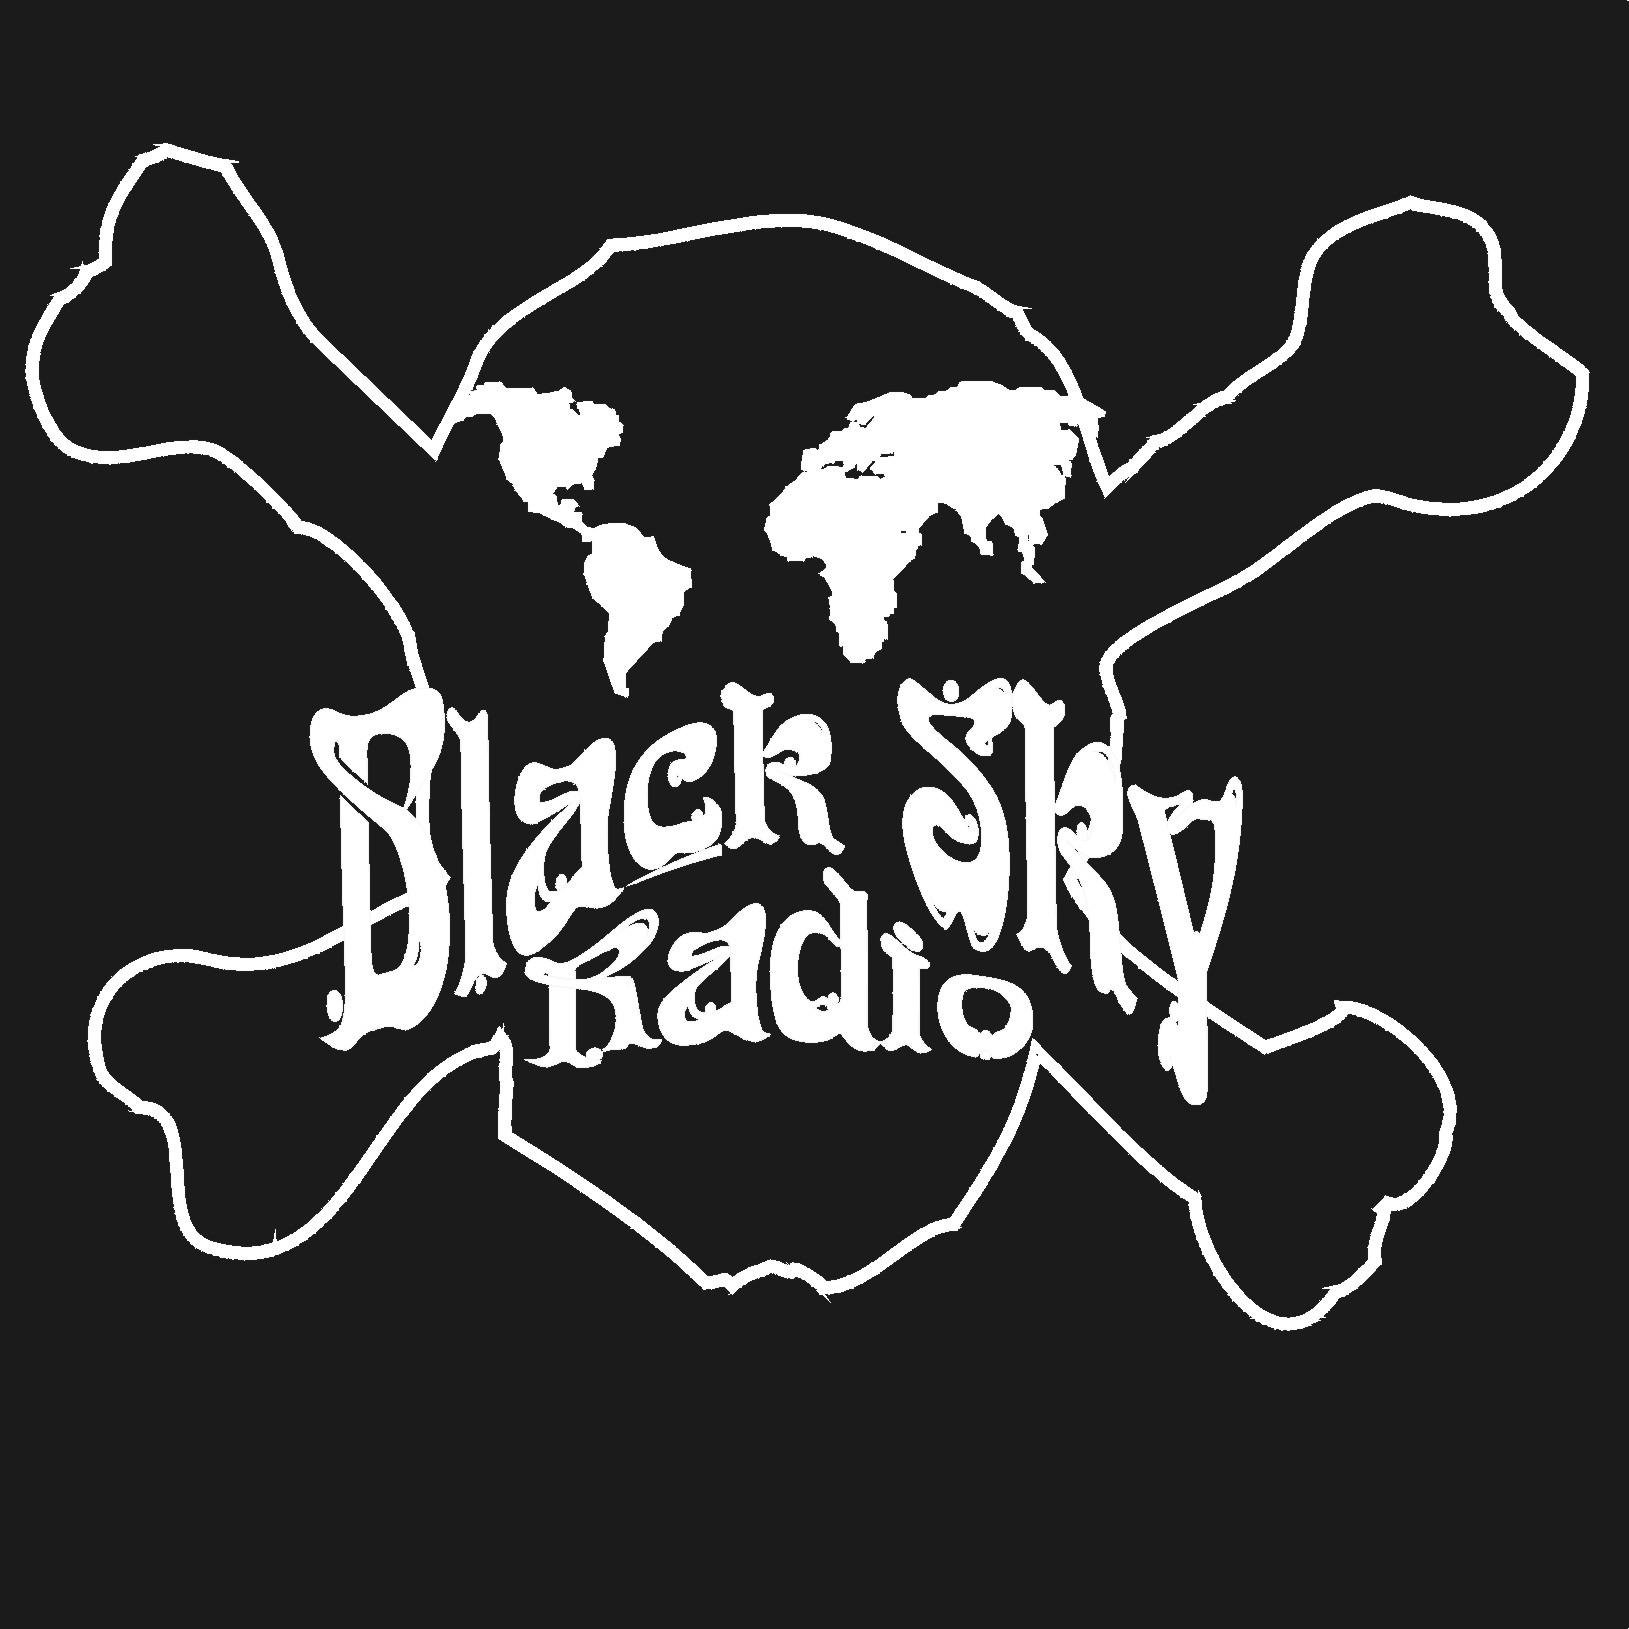 Blackskyradio Social Profile